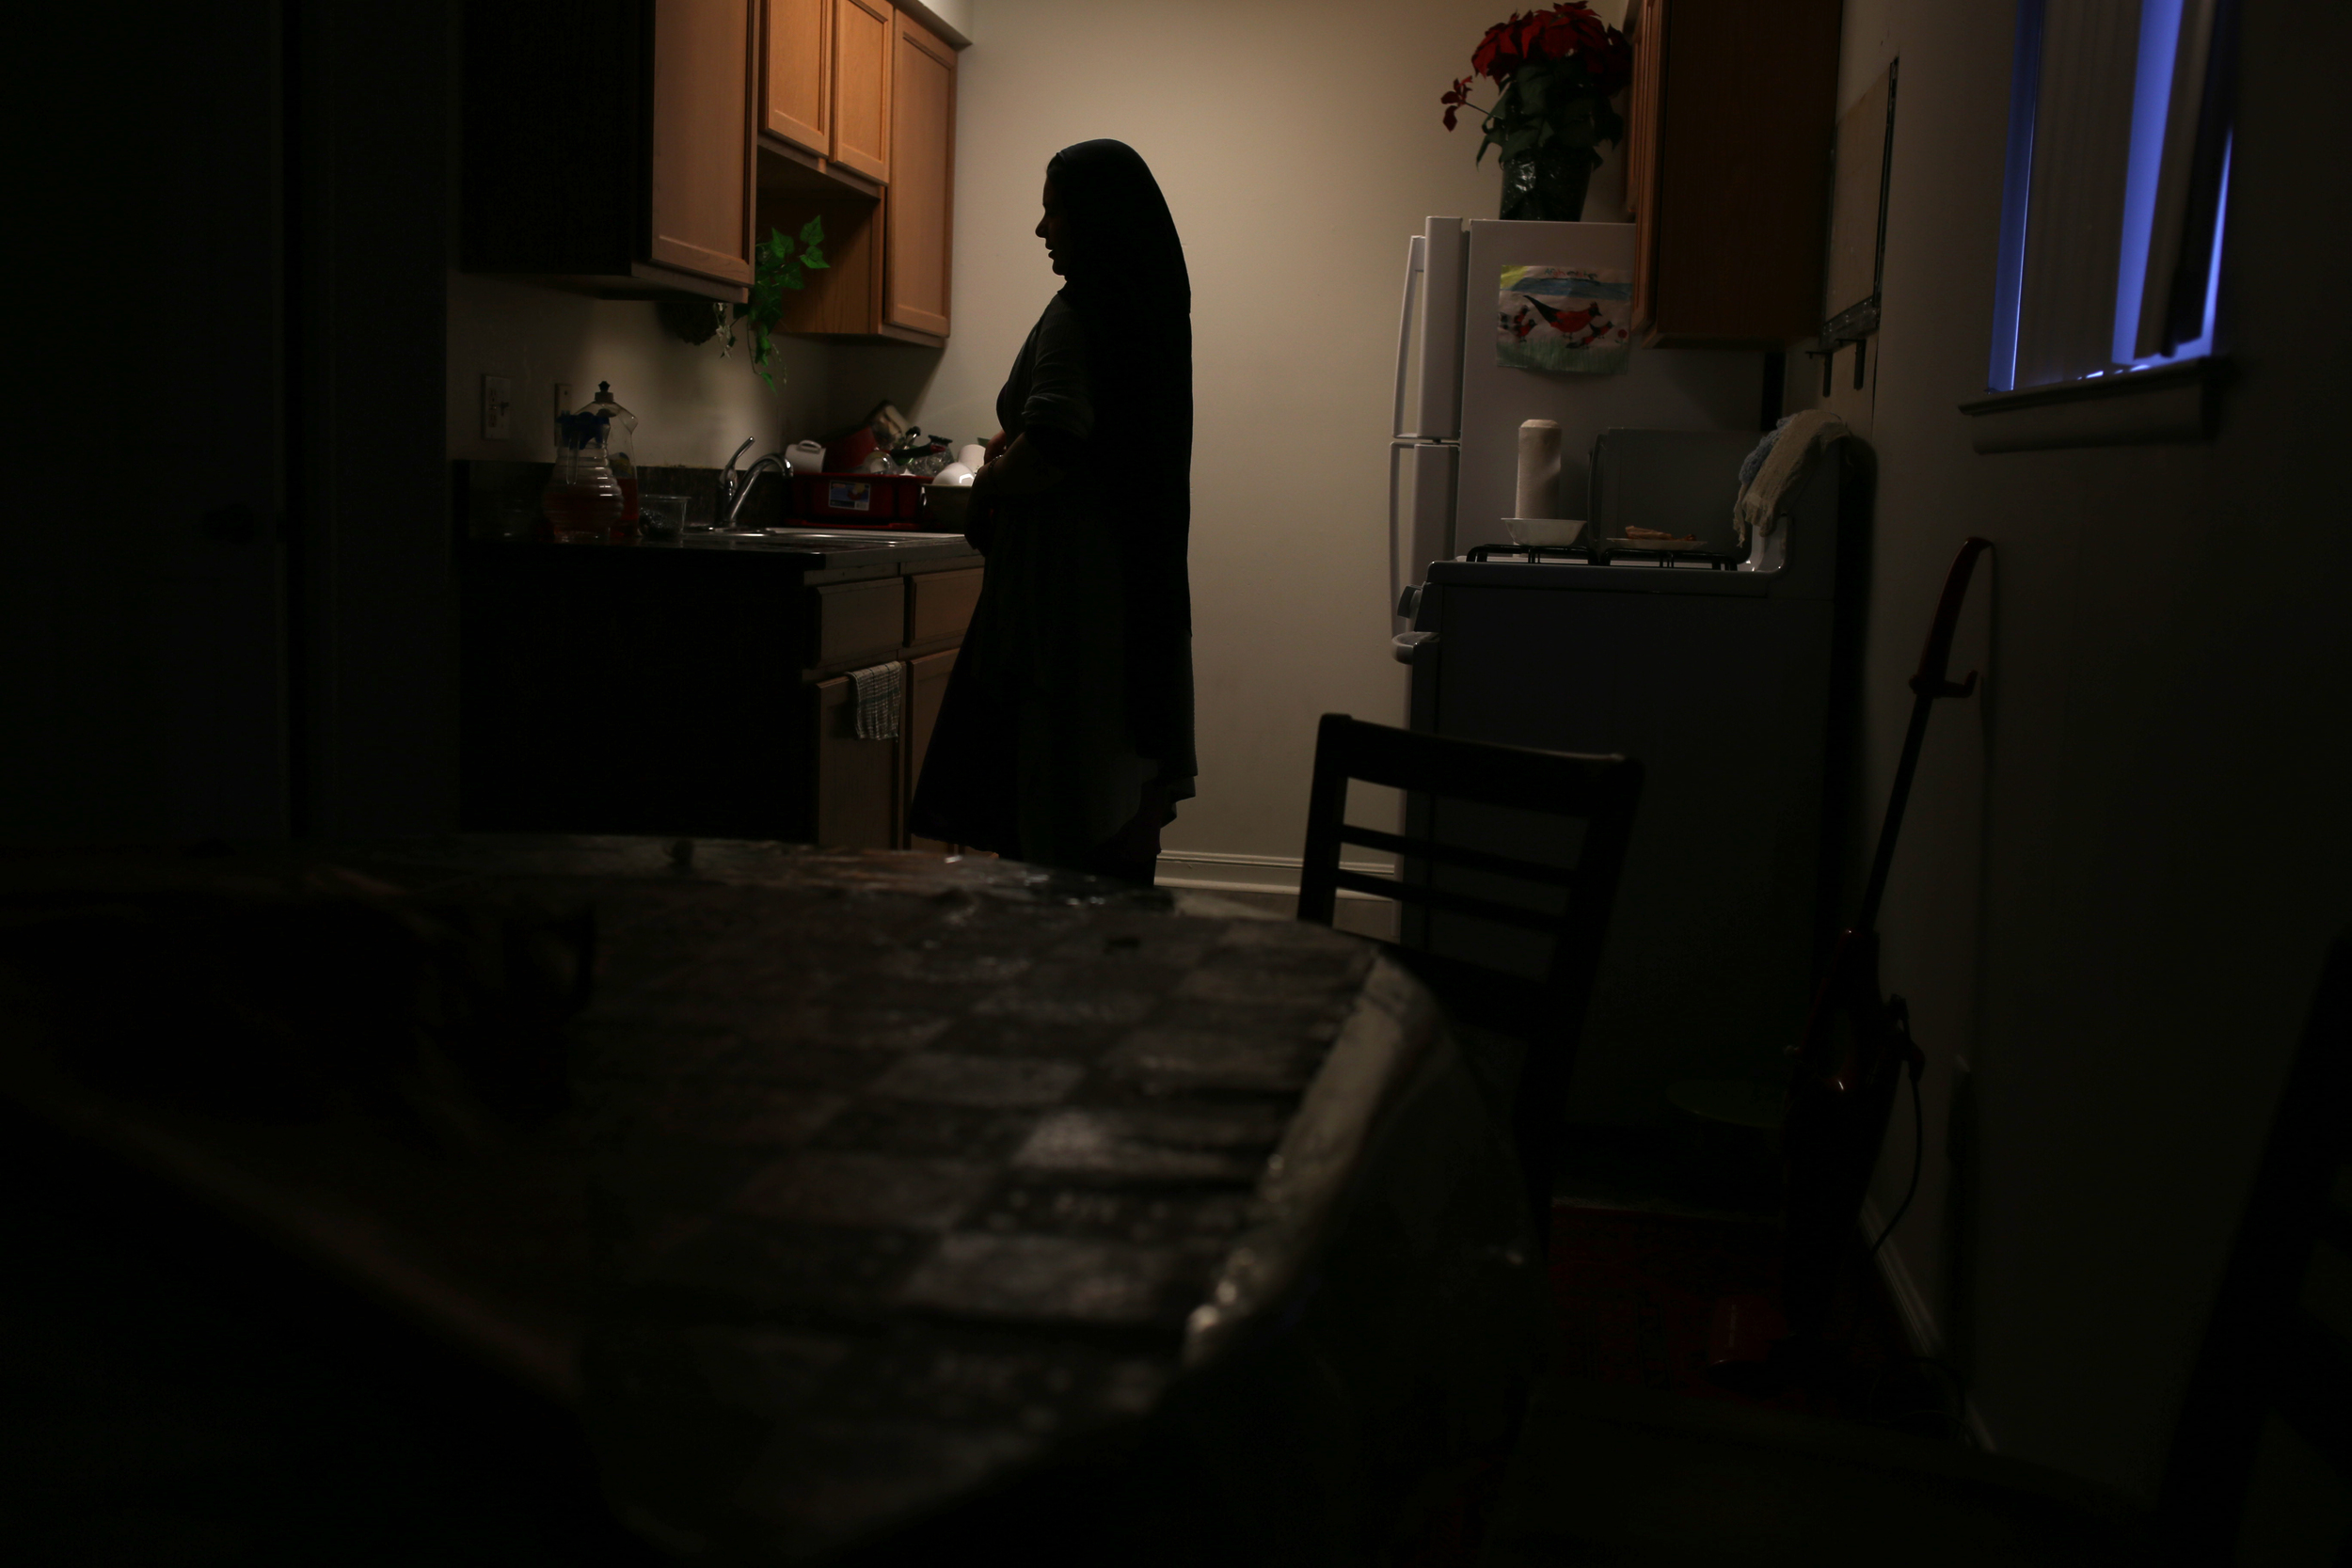 Pashtoon cleans the kitchen within her apartment. Pashtoon struggled both physically and emotionally when they moved to the United States but is much happier now. She takes English classes four times a week and is getting help from her children and husband.